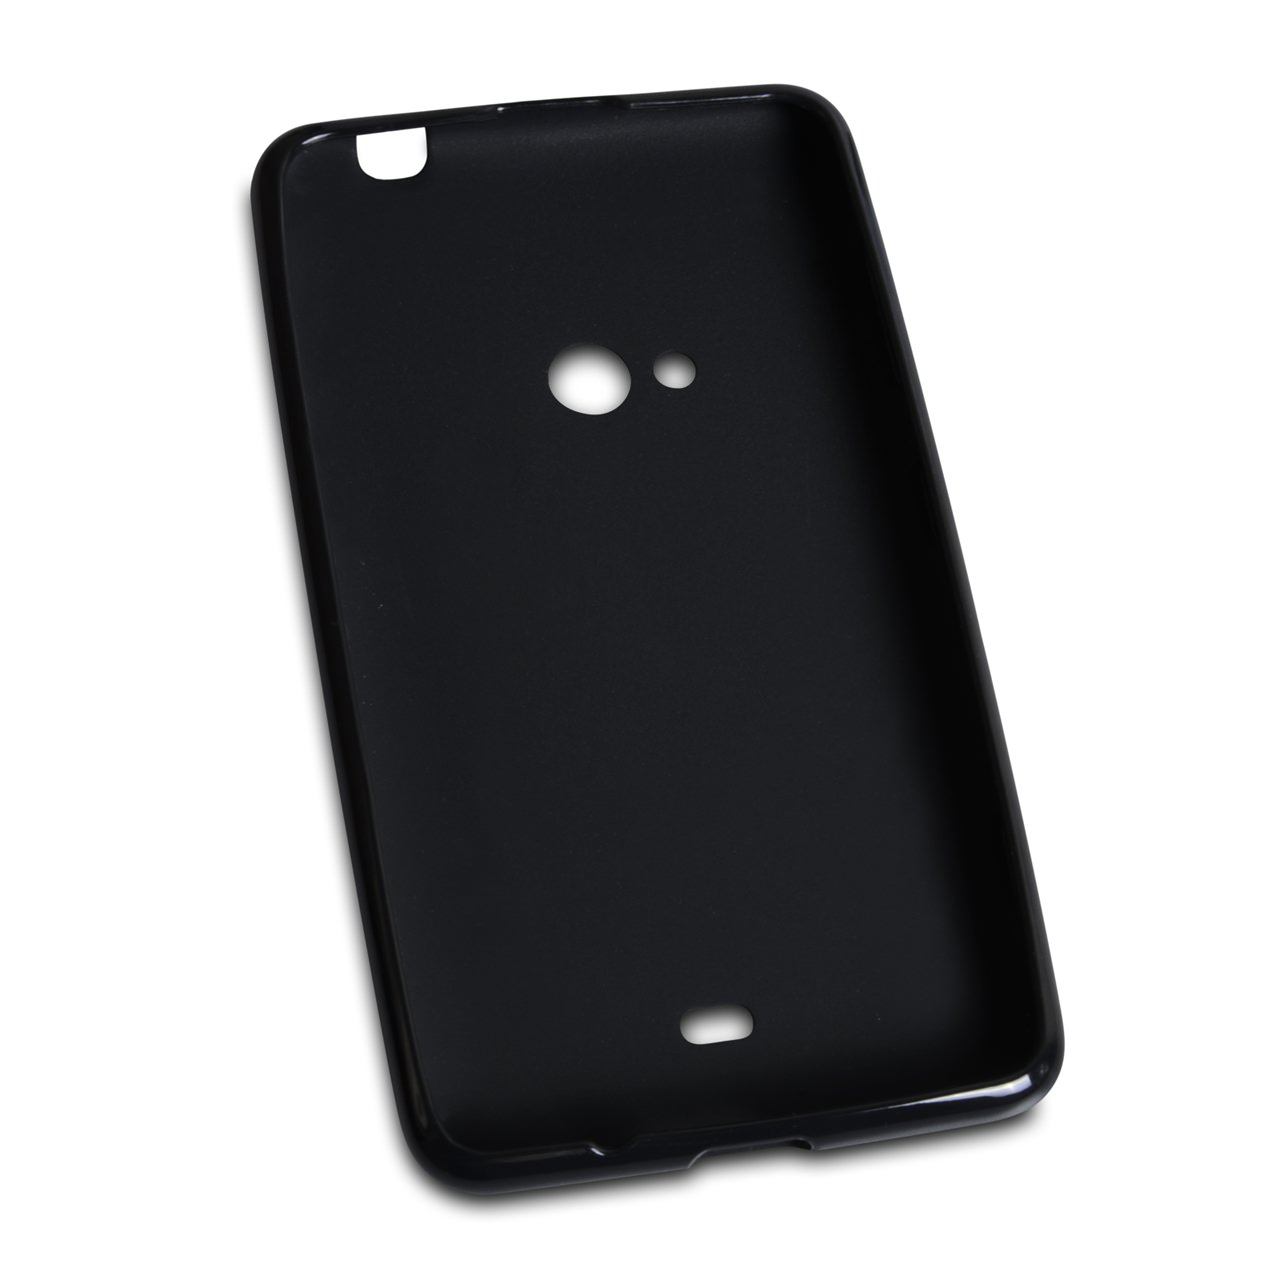 YouSave Accessories Nokia Lumia 625 Gel Case - Black